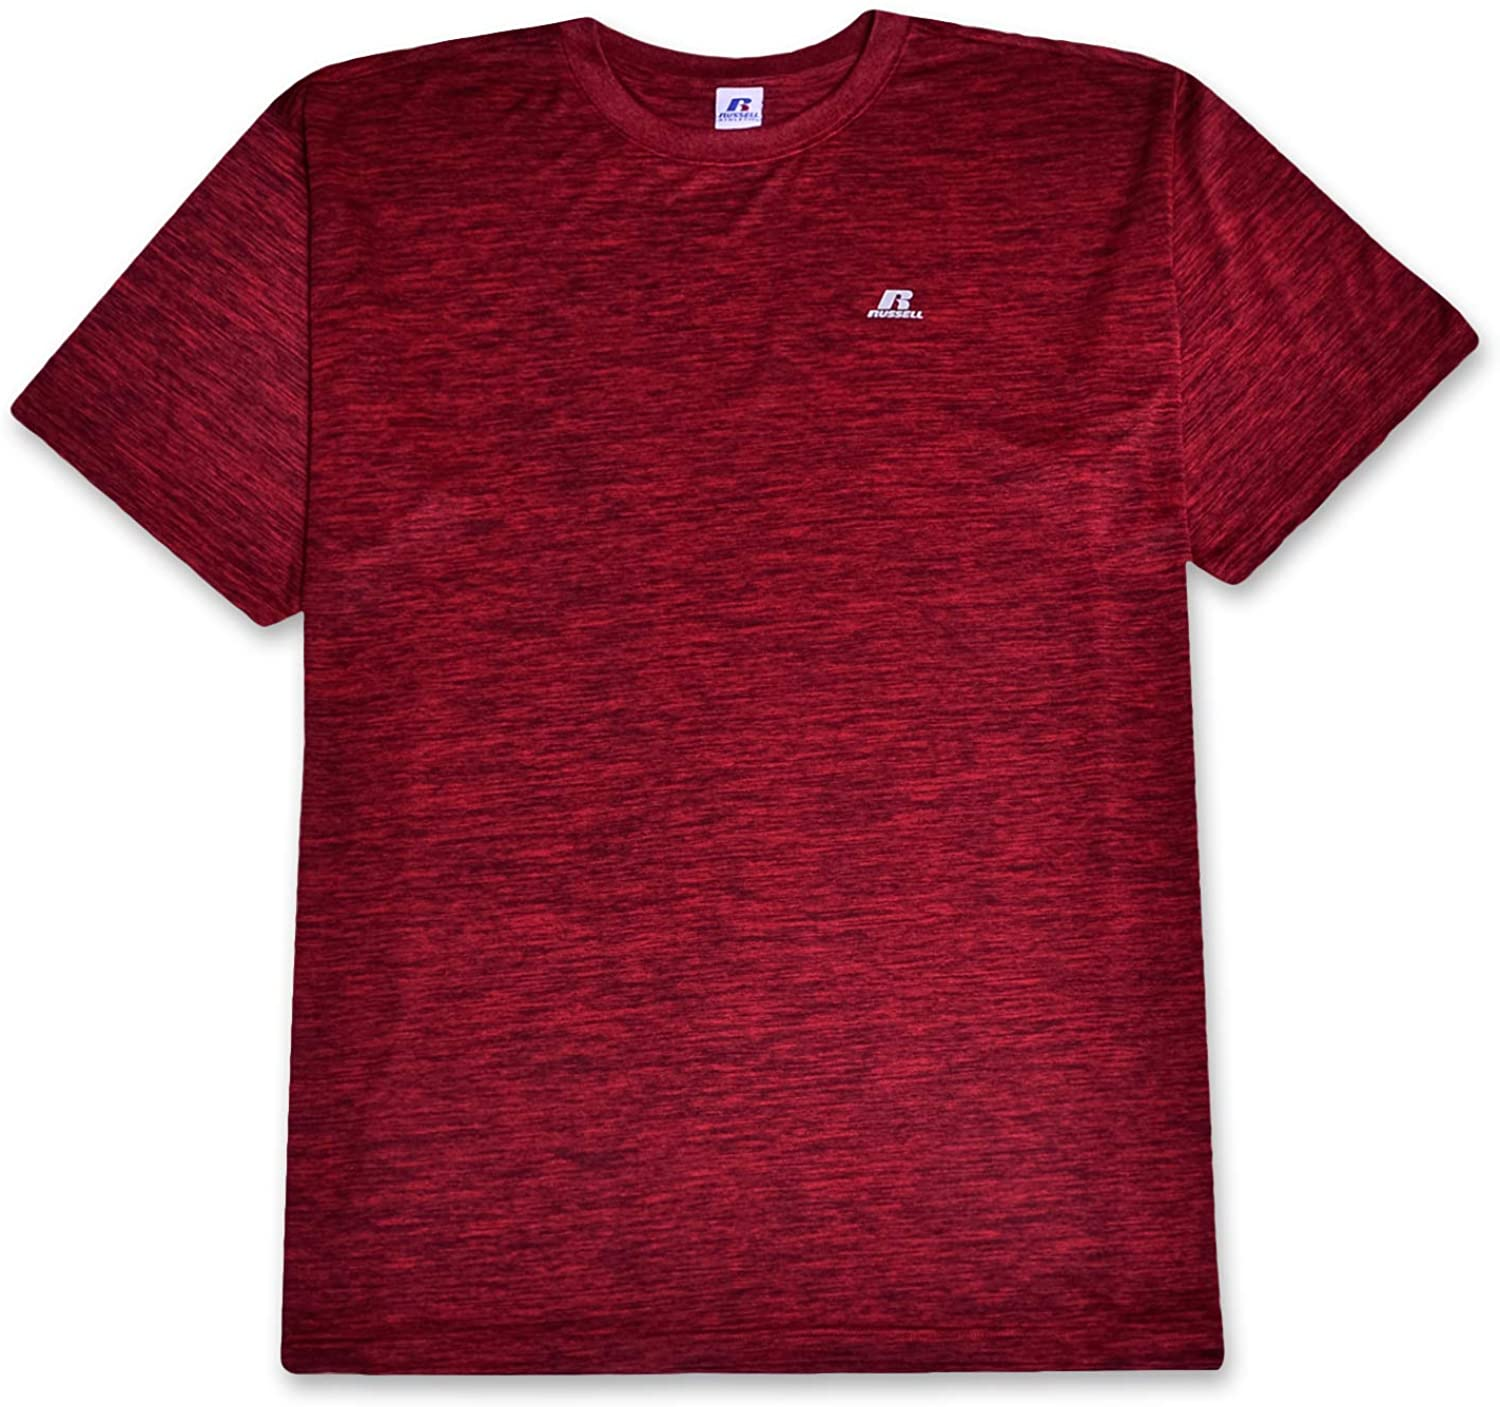 Russell Big and Tall Mens T Shirt Active Performance Moisture Wicking Technology